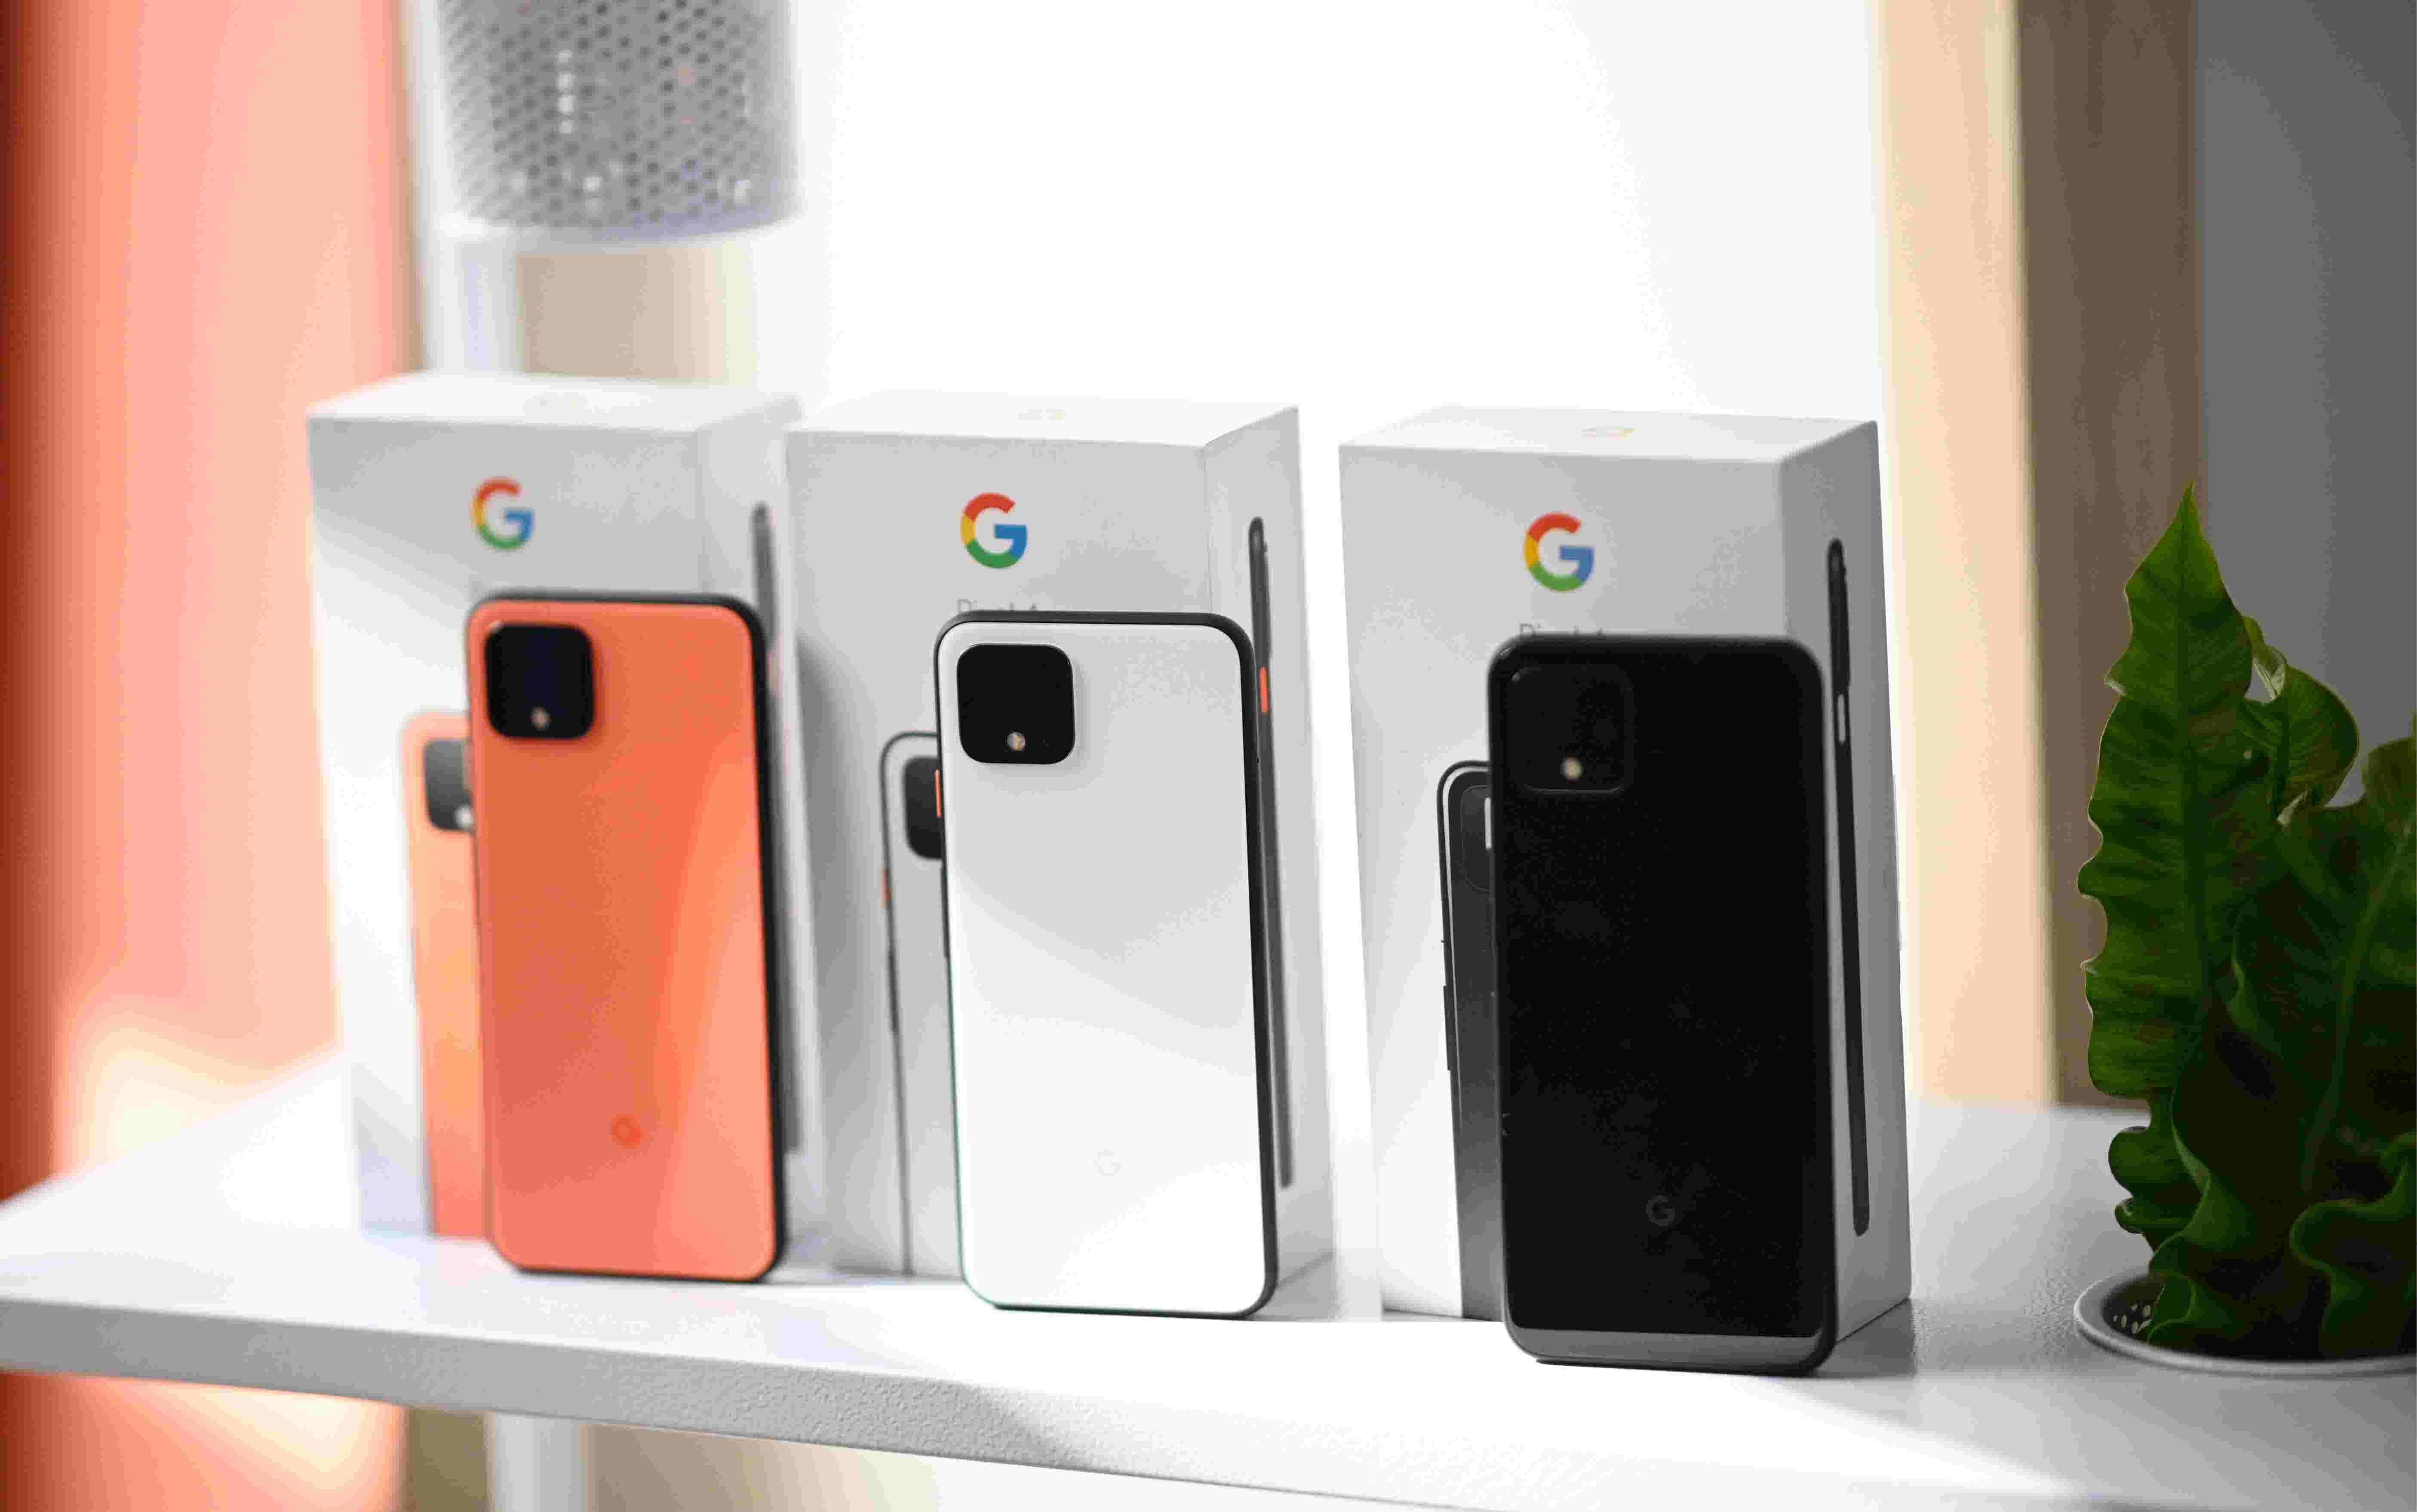 Google unveils new phone, connected gadgets